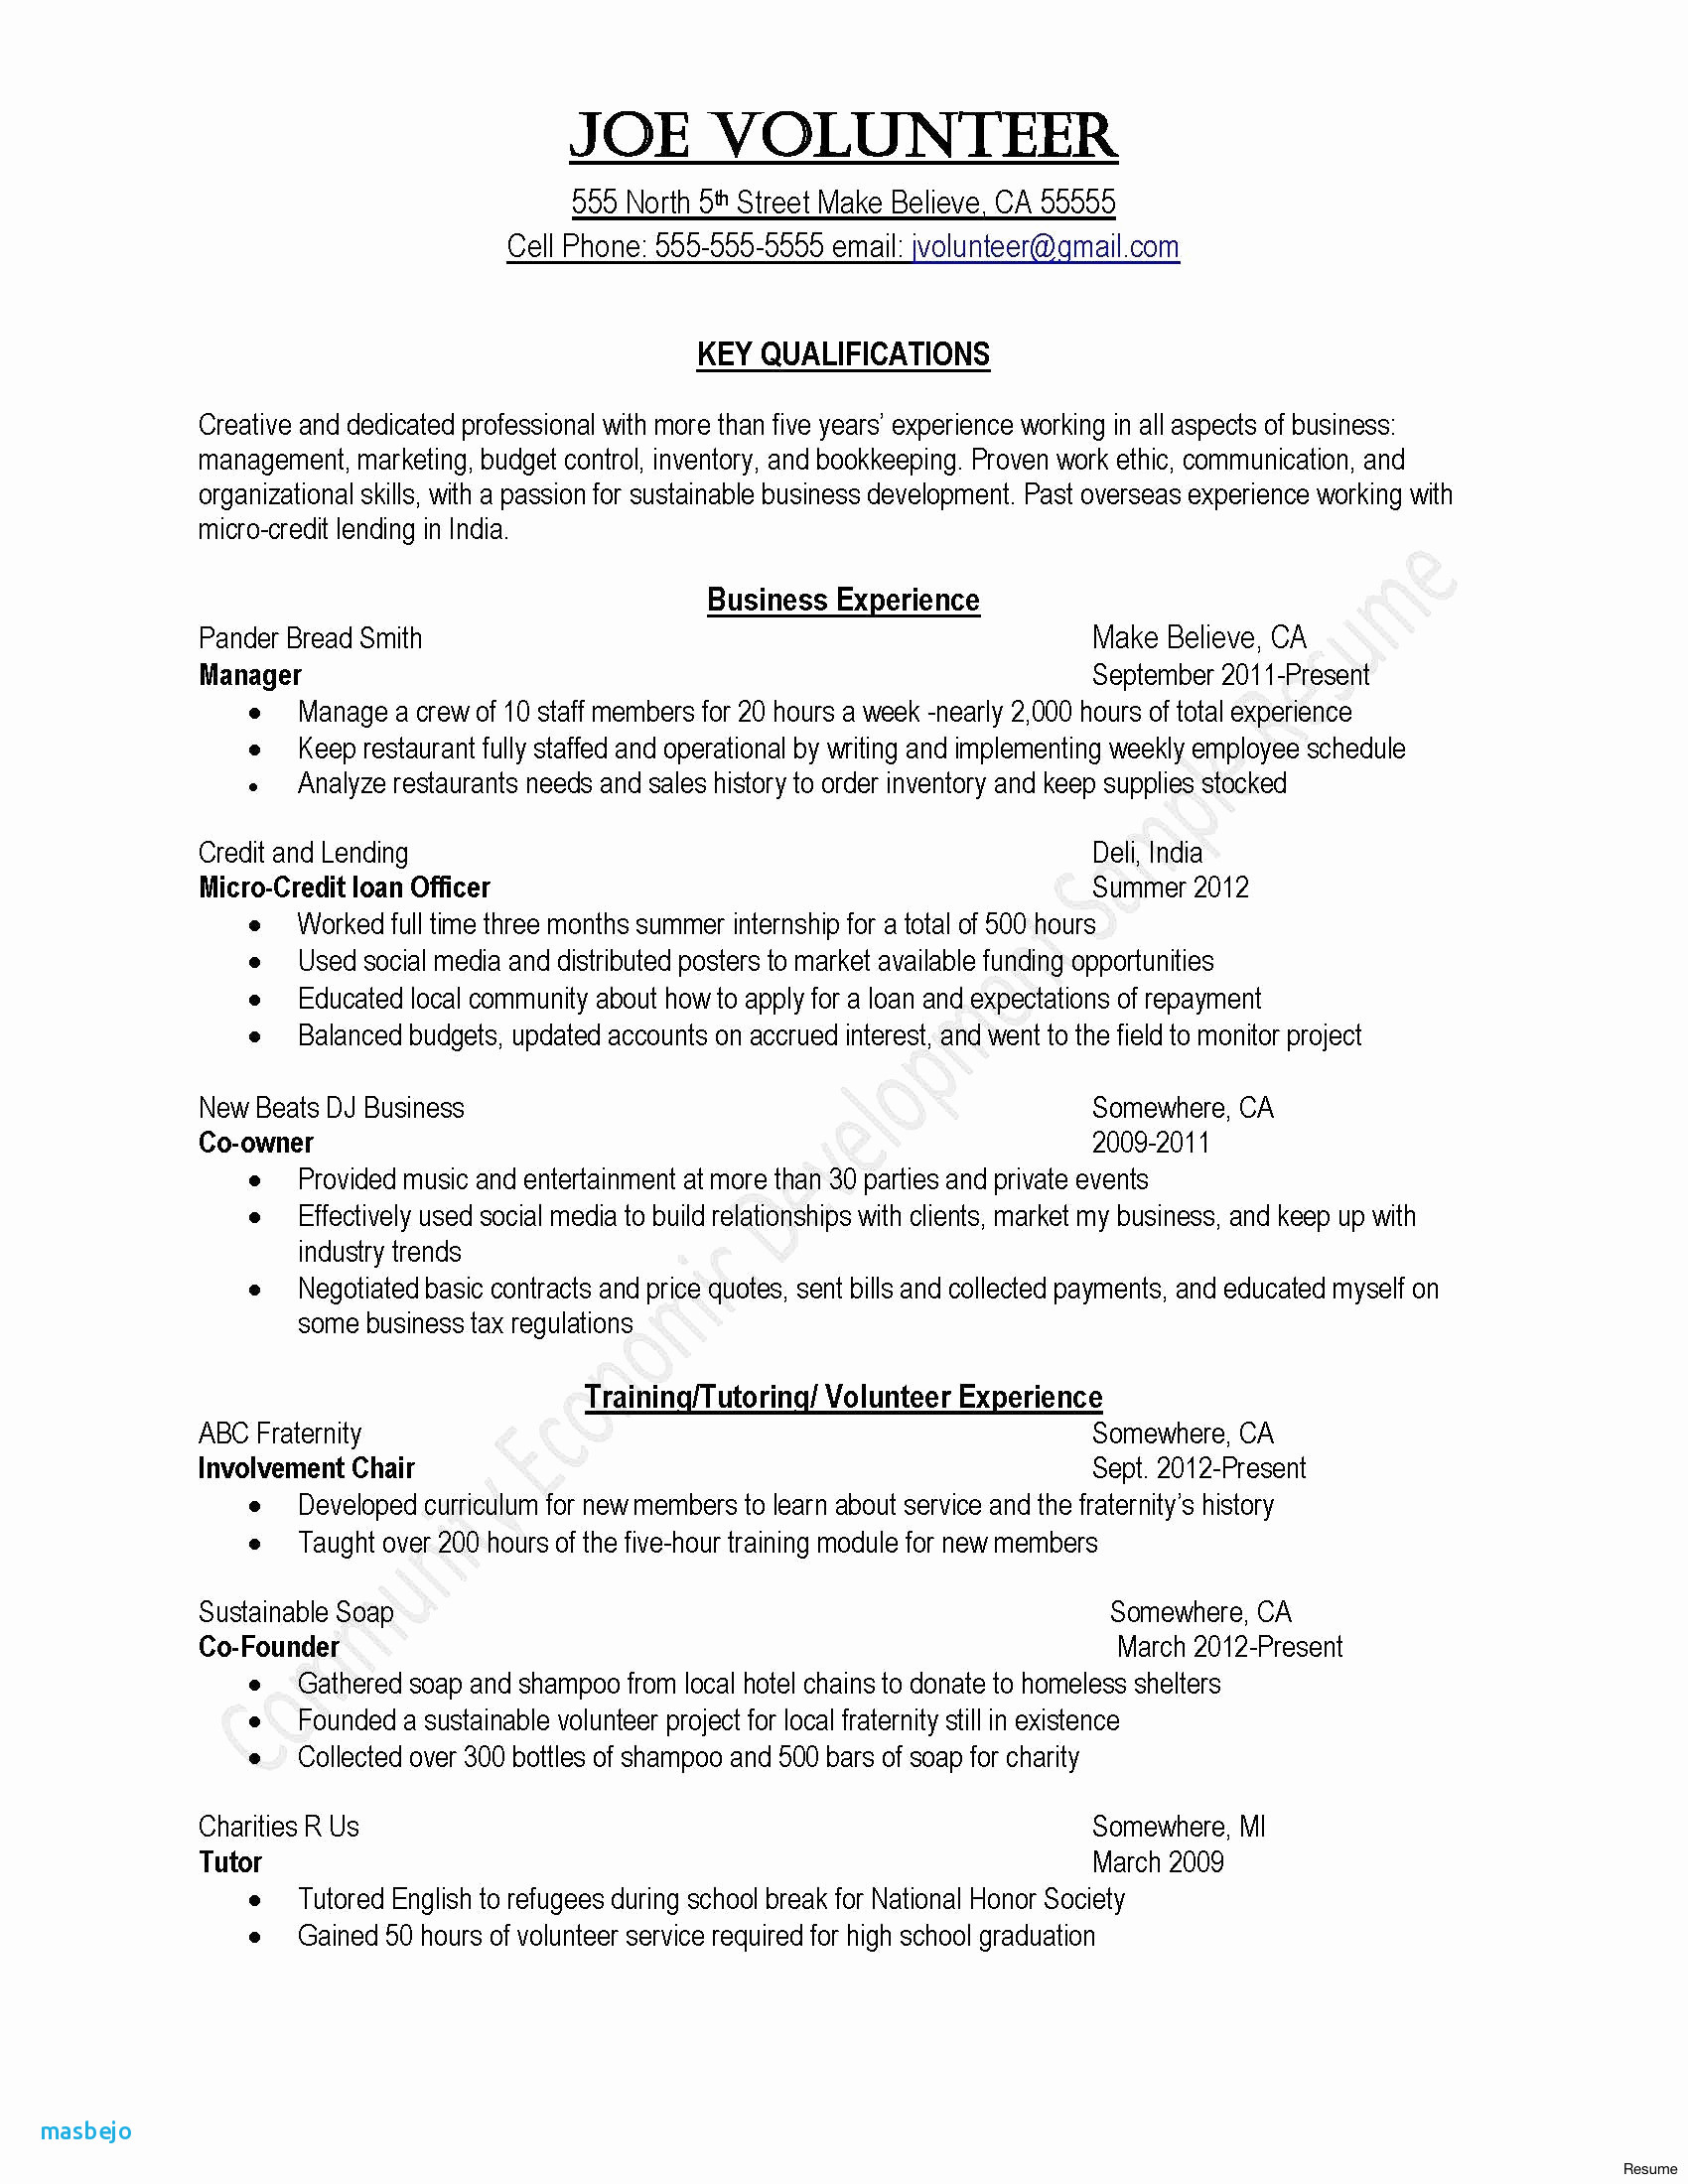 Graphic Resume Templates - Loan Ficer Resume Examples Graphic Resume Templates New Resume